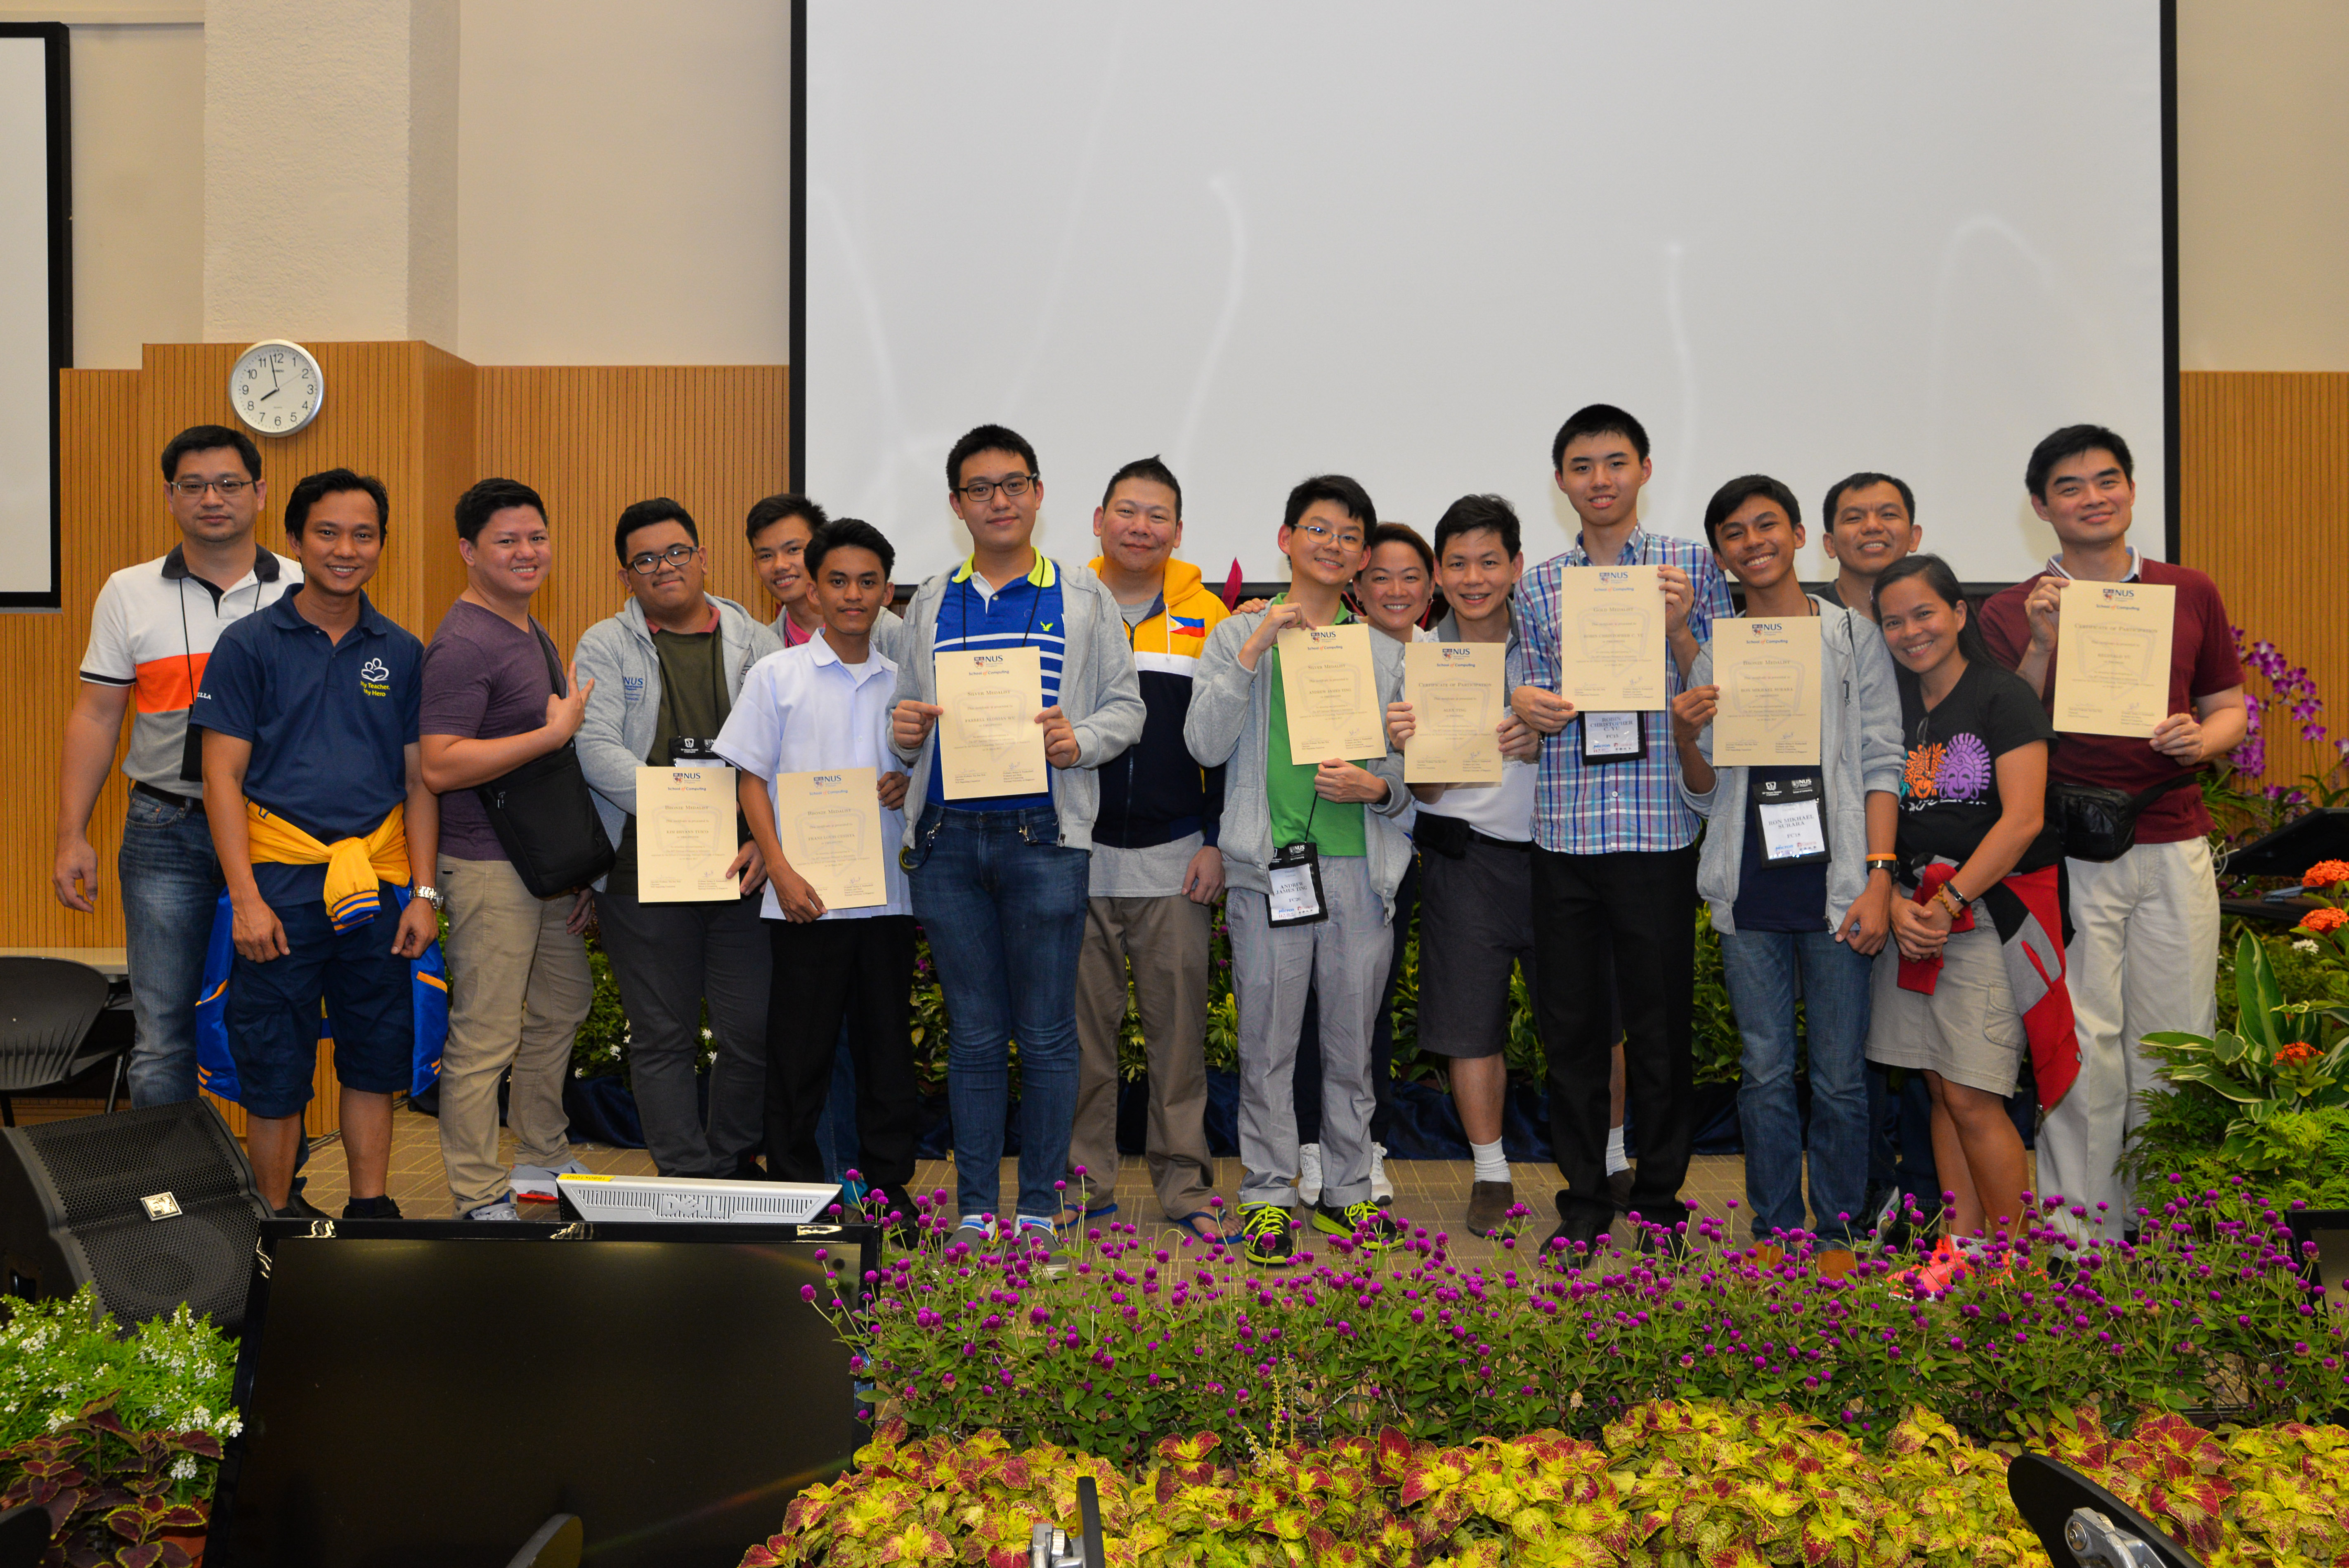 Philippine team to Singapore Informatics Olympiad all bag medals